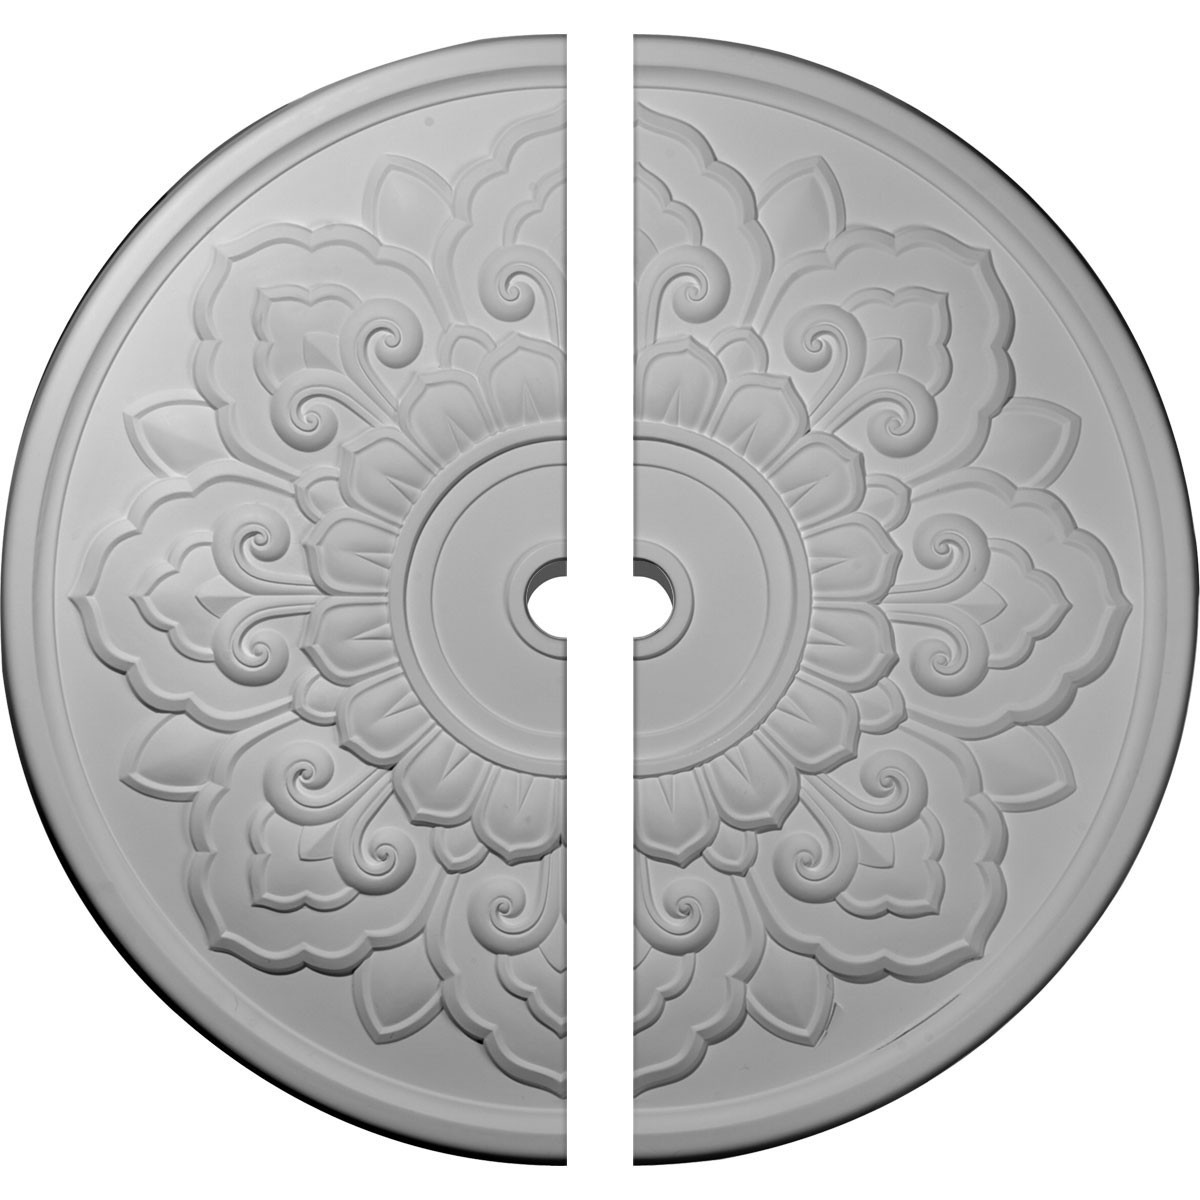 """EM-CM50LO2 - 50 1/8""""OD x 3 5/8""""ID x 1 3/4""""P Lorry Ceiling Medallion, Two Piece (Fits Canopies up to 14 1/8"""")"""